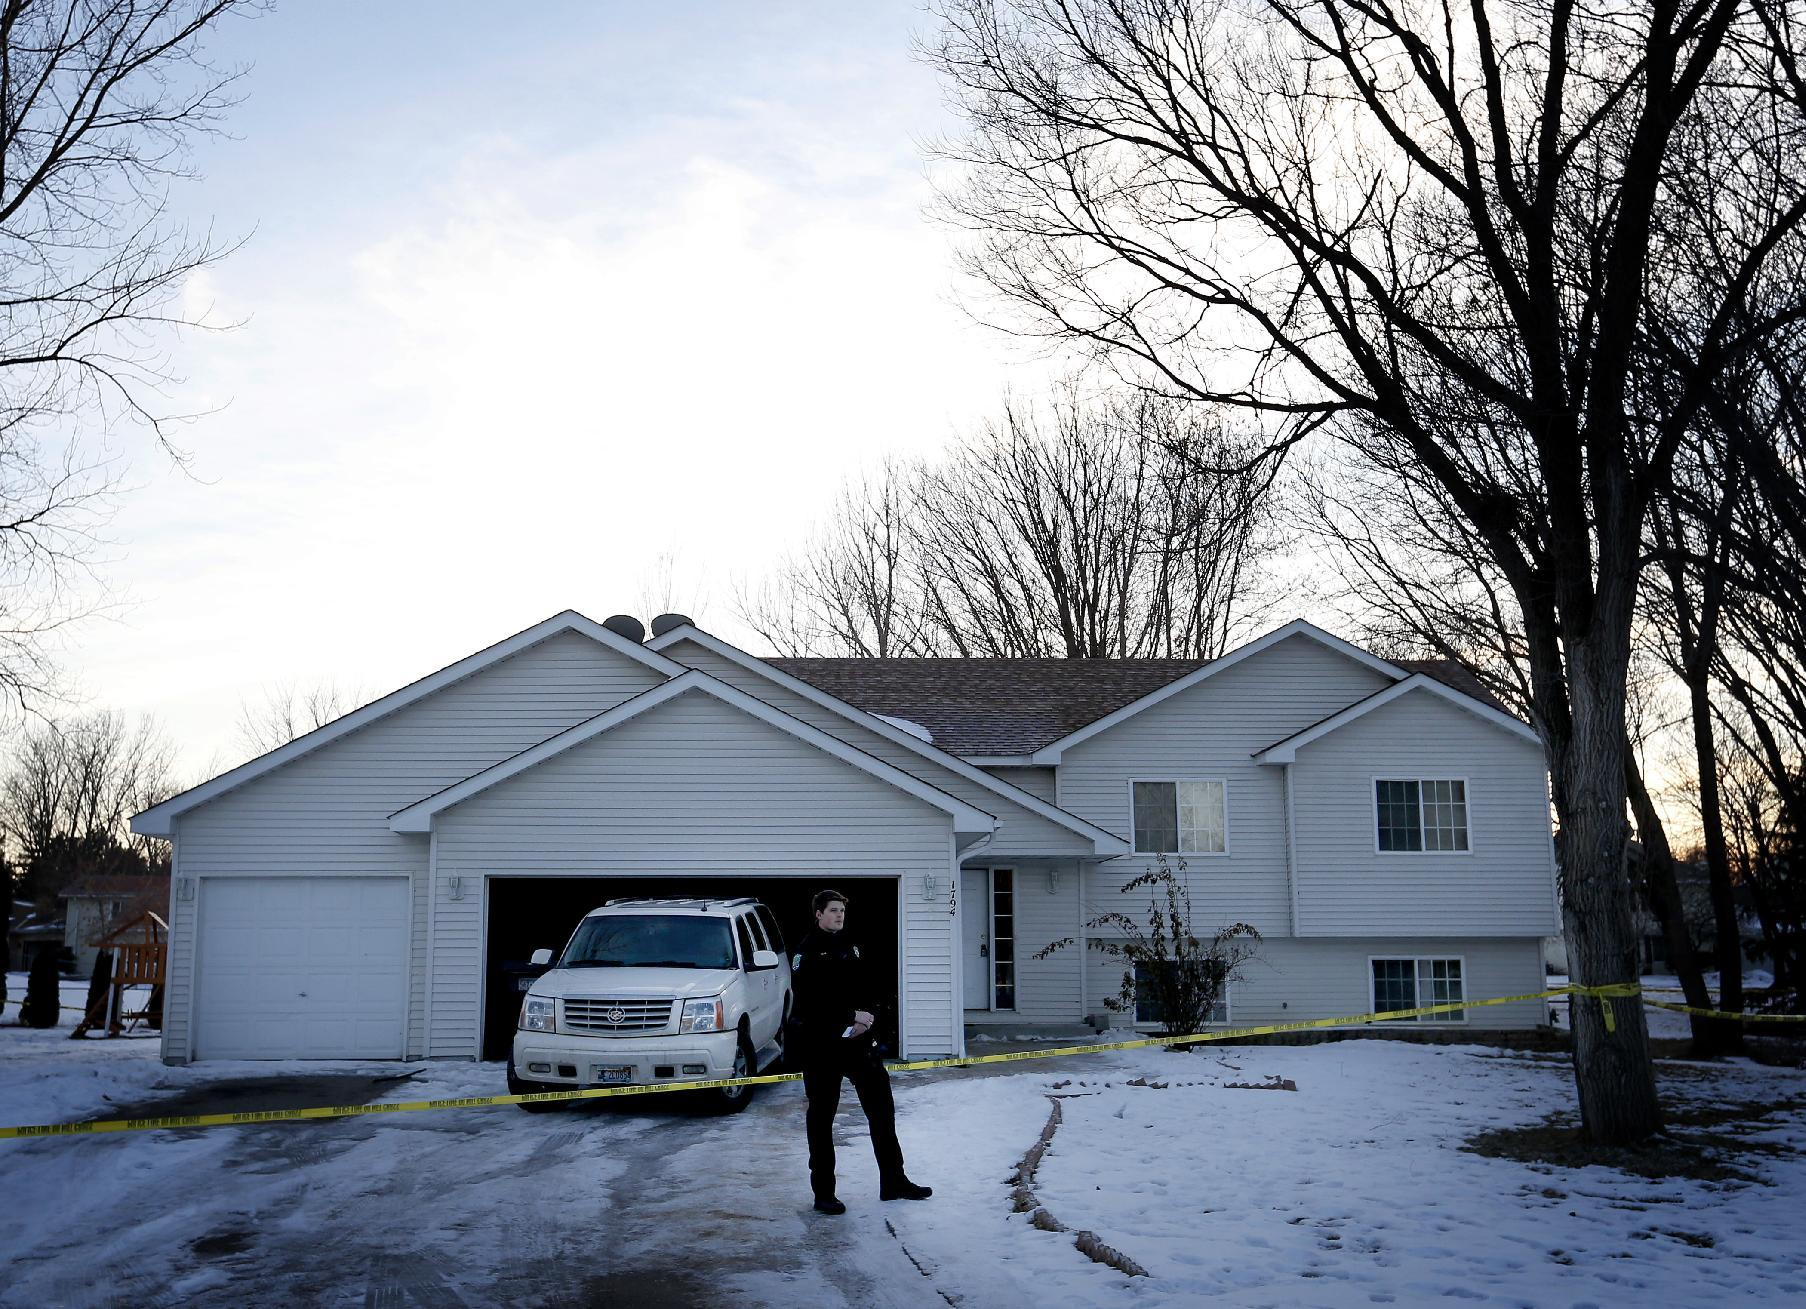 Police: 13-year-old fatally shot playing 'cops and robbers'